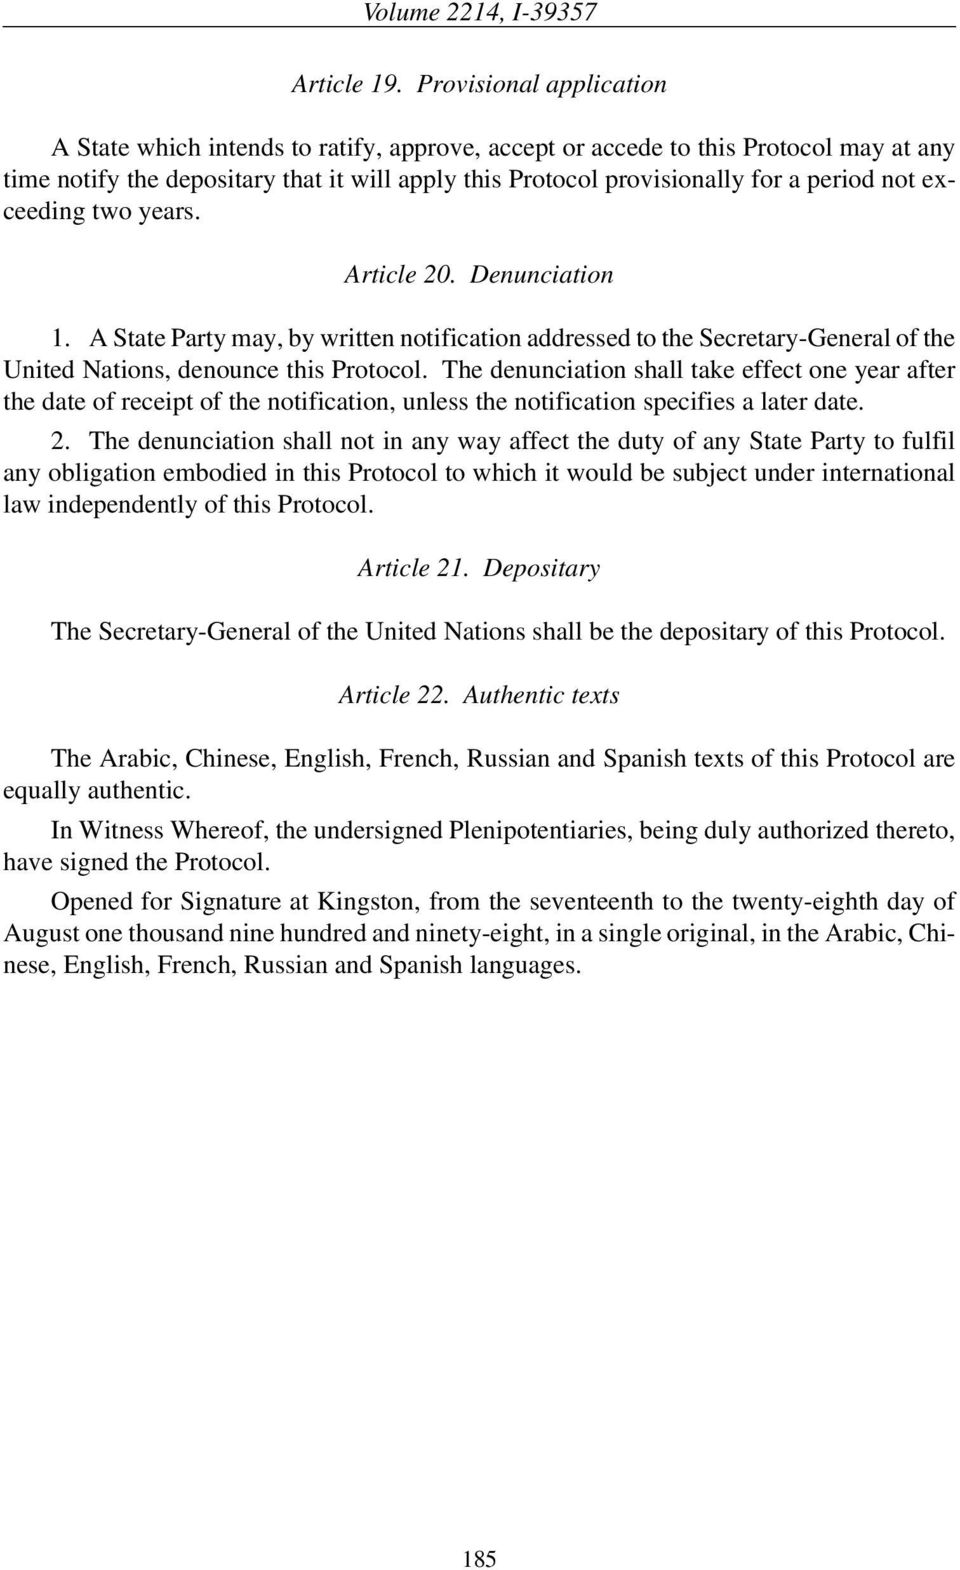 not exceeding two years. Article 20. Denunciation 1. A State Party may, by written notification addressed to the Secretary-General of the United Nations, denounce this Protocol.